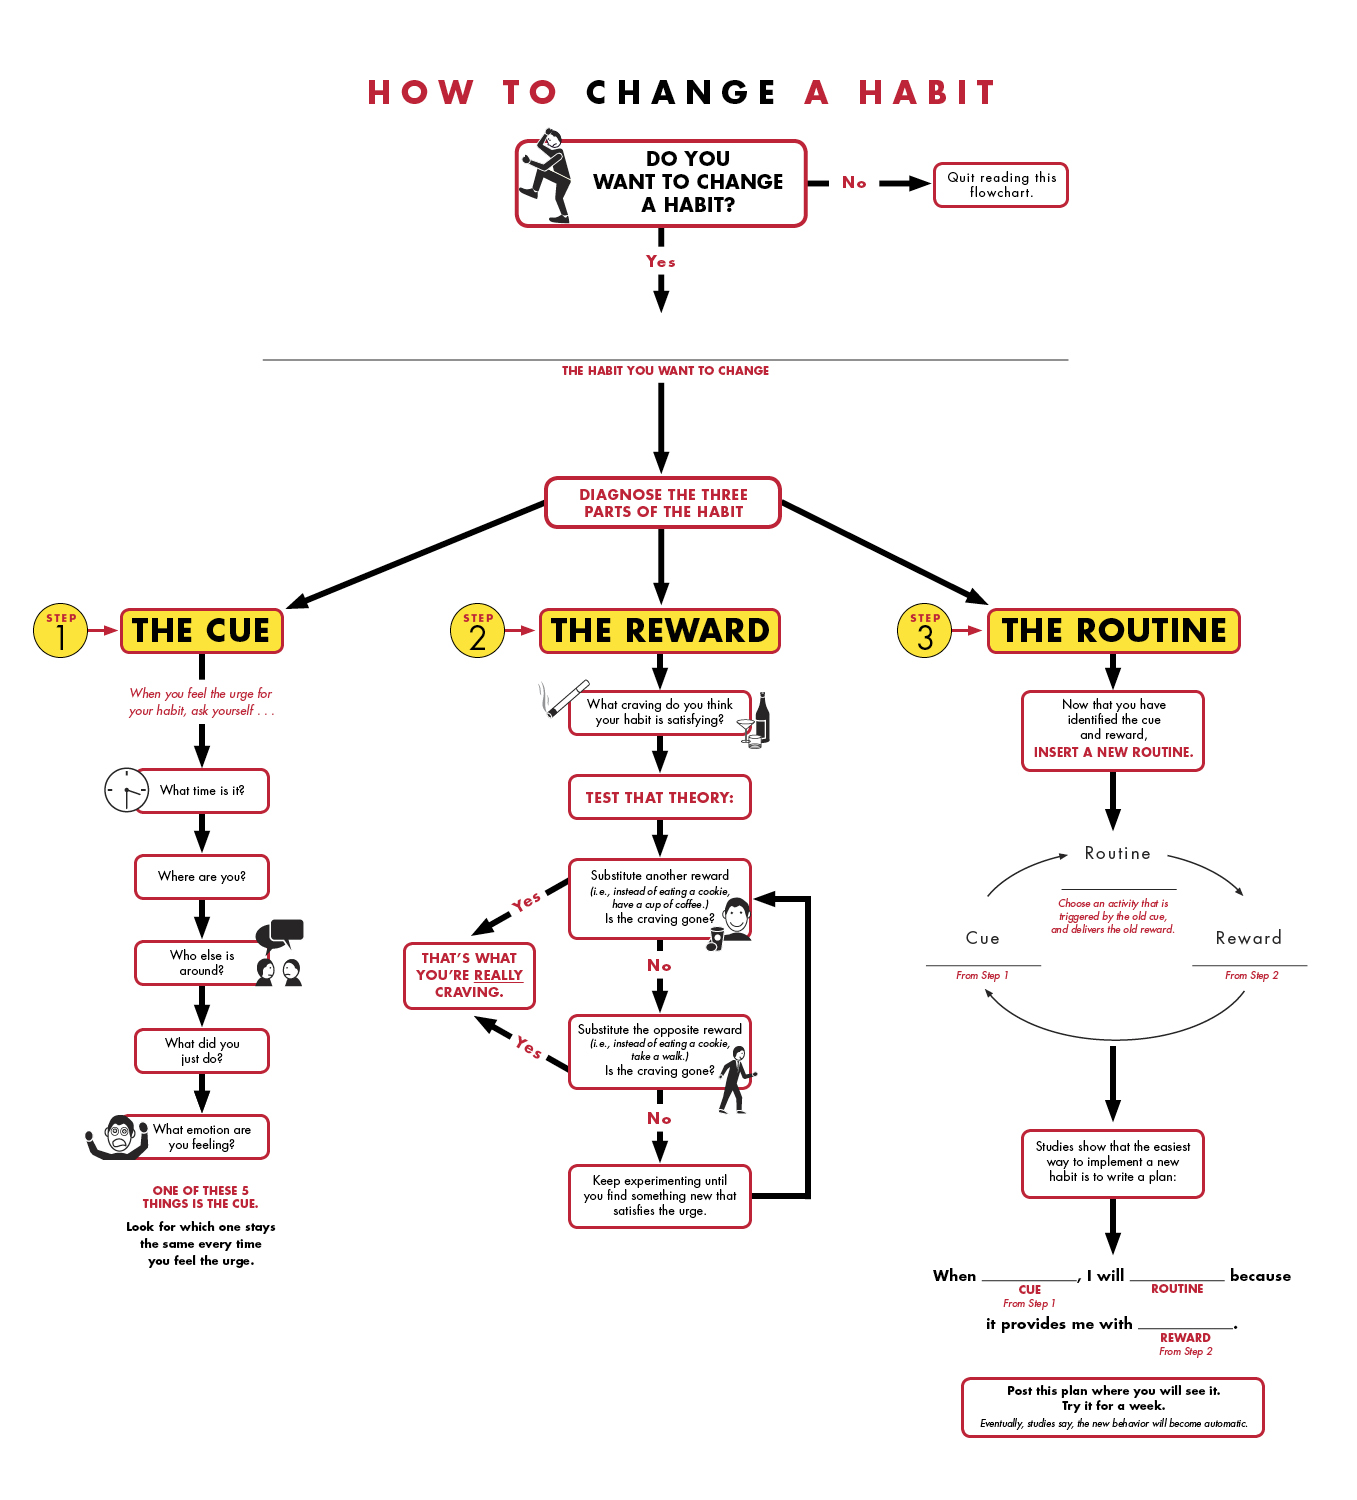 A flowchart for changing a habit flowchart for creating a habit instructions on changing a habit geenschuldenfo Images